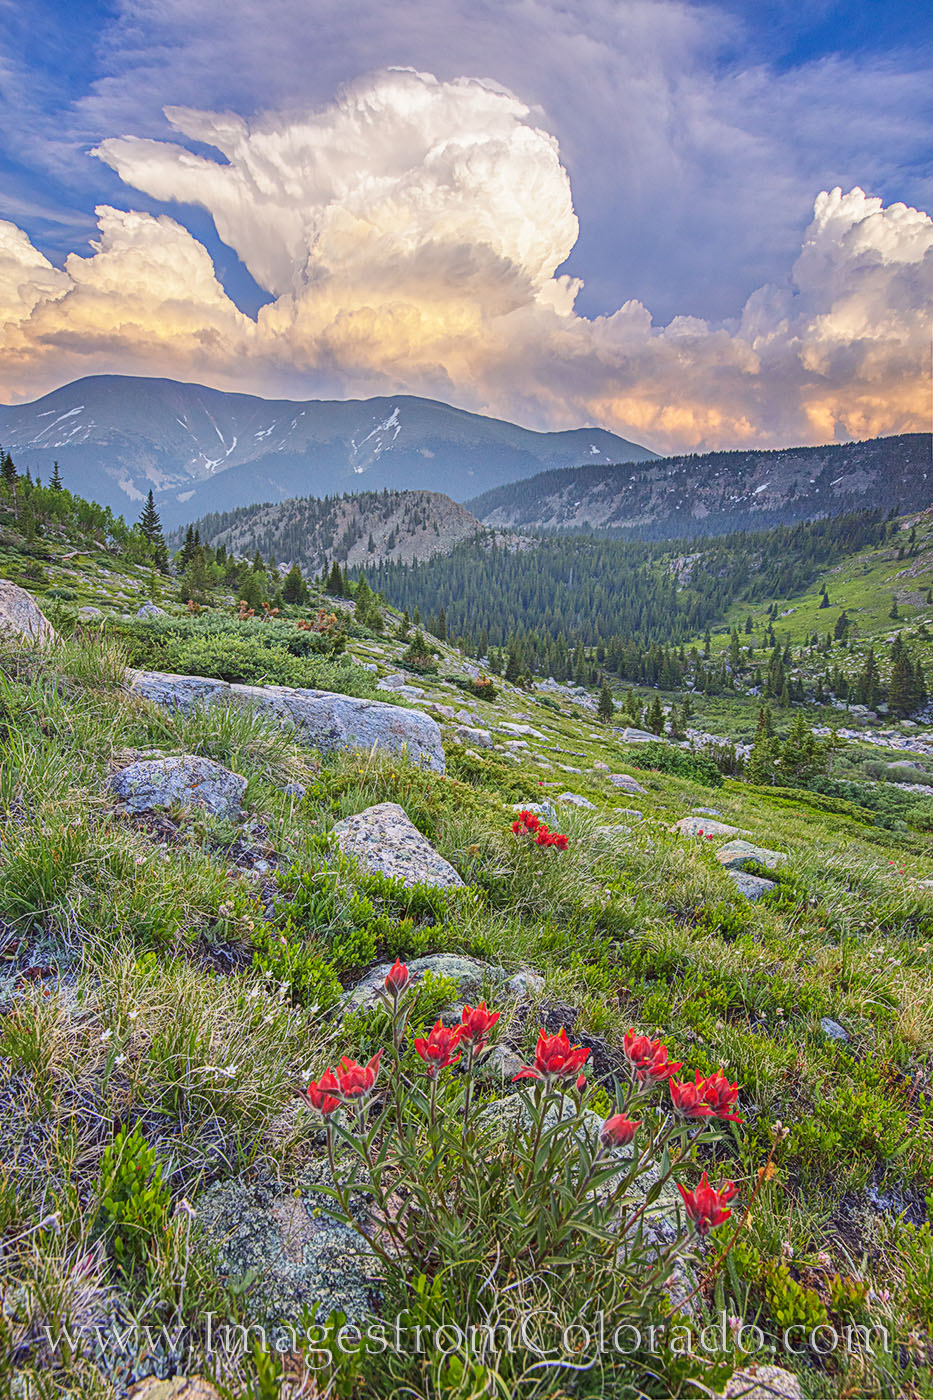 As storms brewed in the distance, red paintbrush, one of Colorado's most beautiful summer wildflowers, bloomed along the slopes...